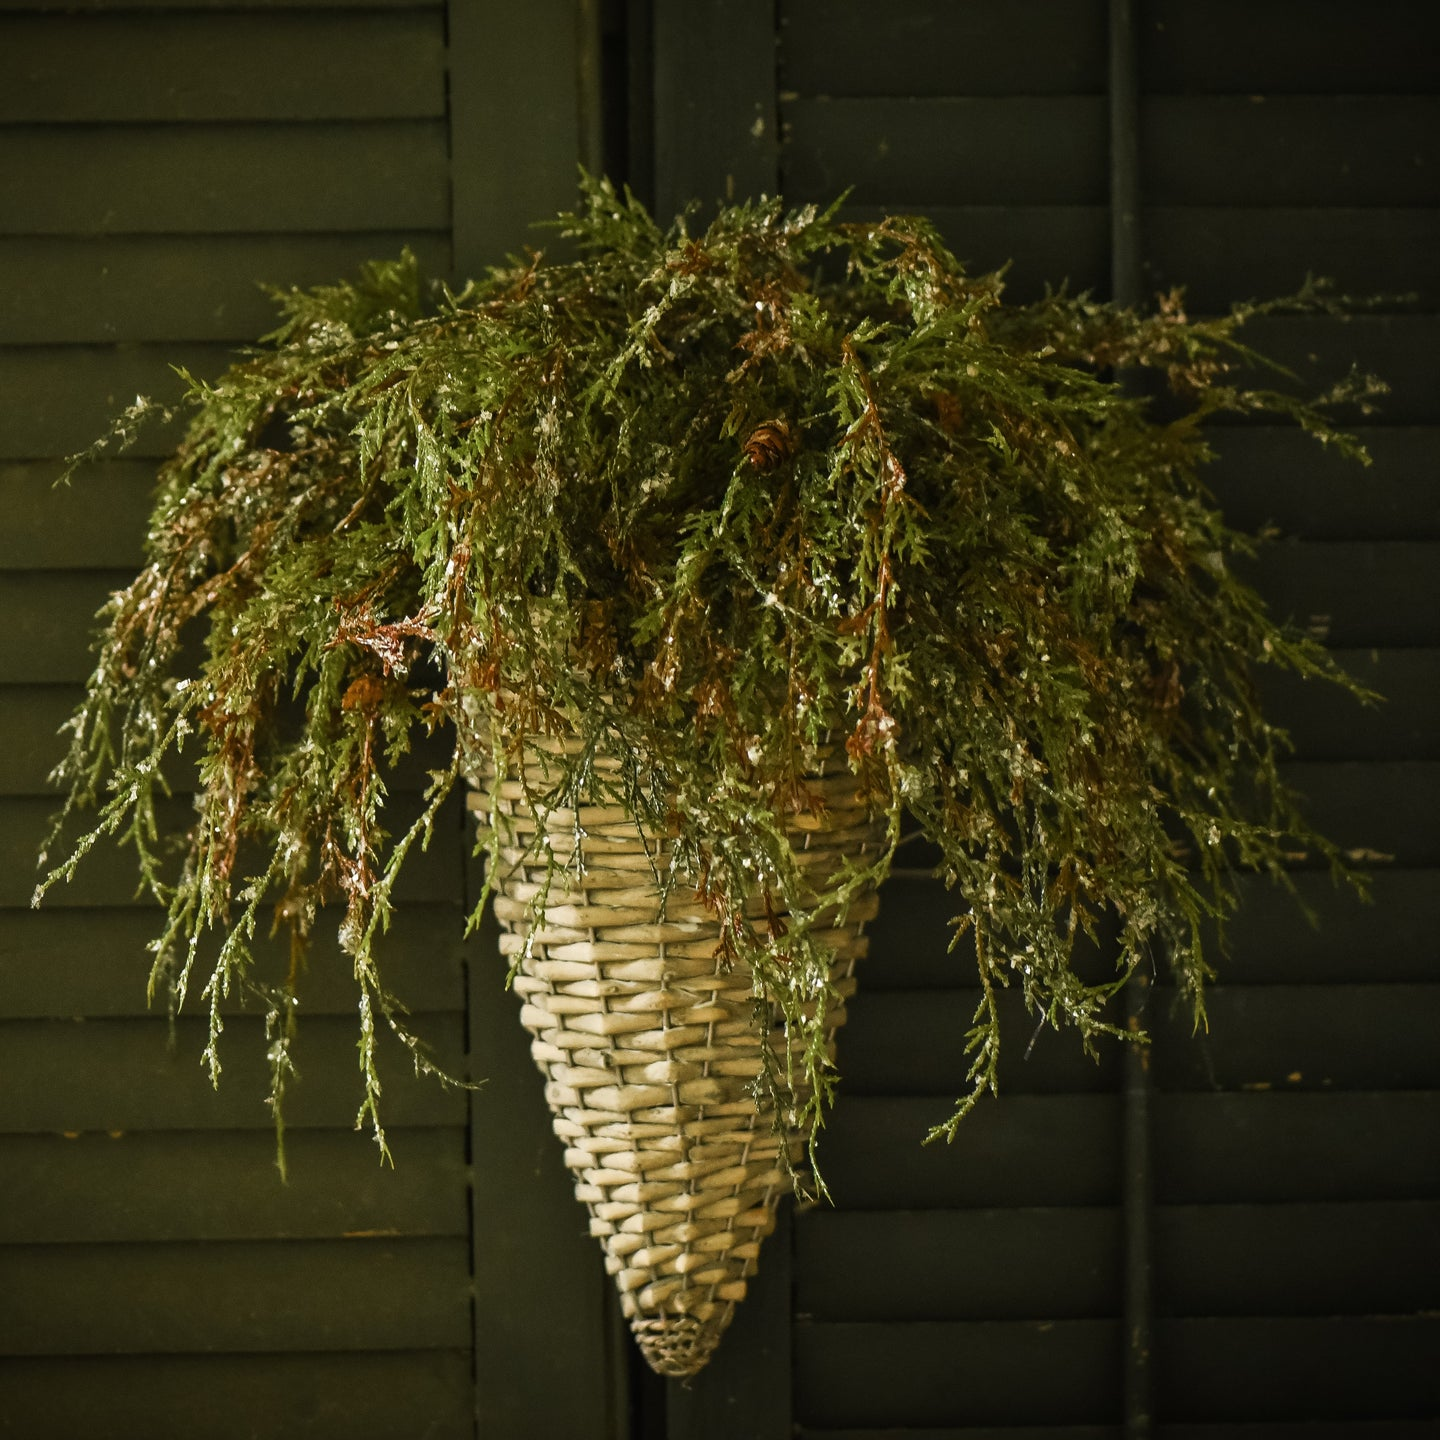 Wicker Sconce Wall Basket - Vintage Crossroads